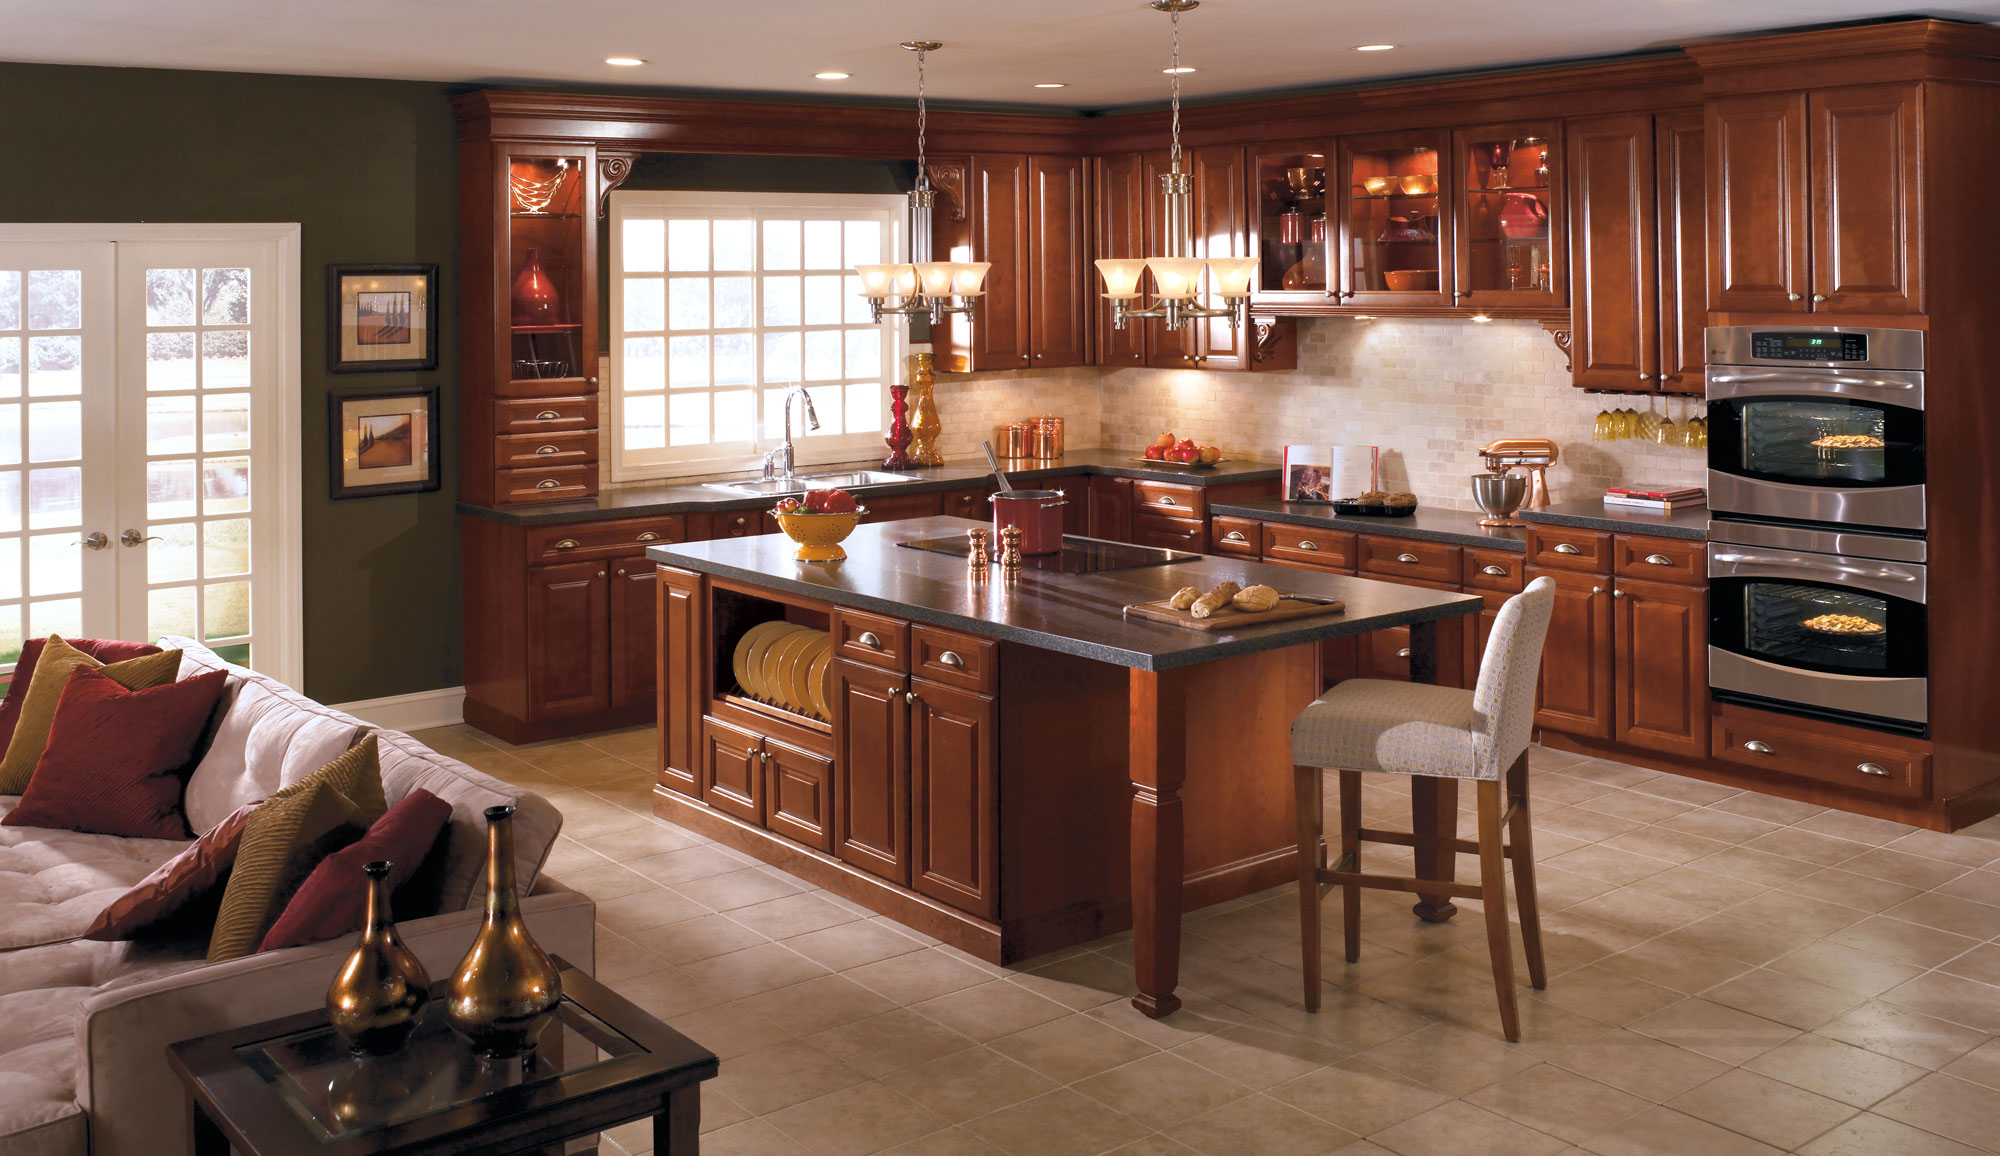 Peachy Aristokraft Kemper Cabinetry Special Offer Kitchens By Beutiful Home Inspiration Papxelindsey Bellcom